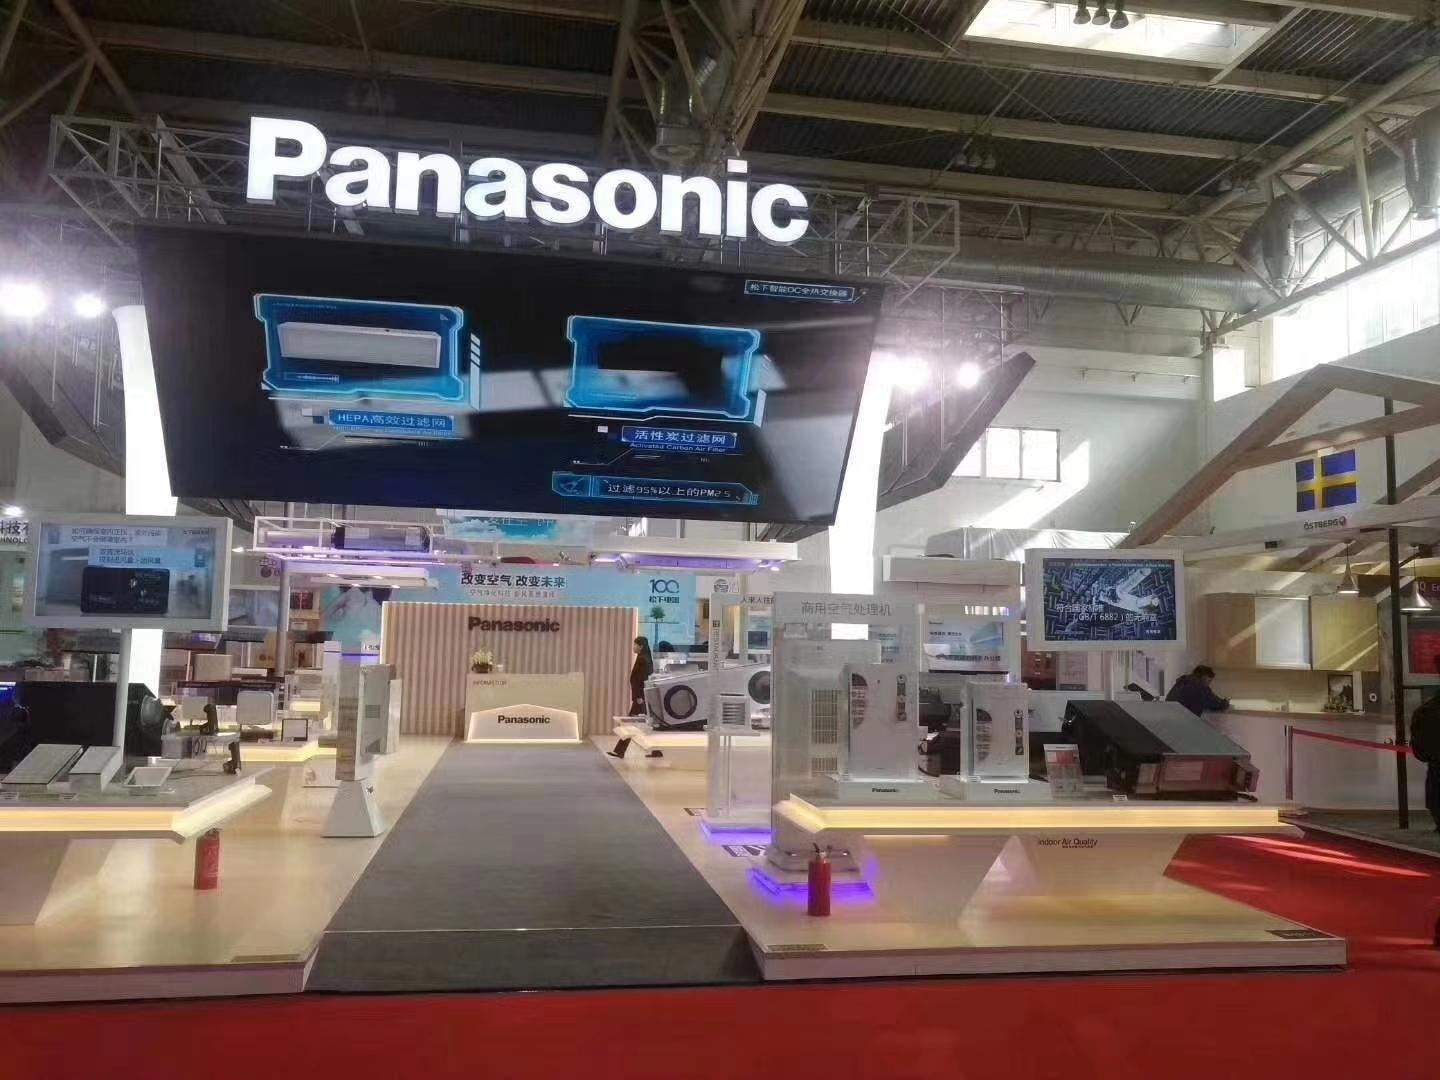 photo: panasonic at china refrigeration 2018